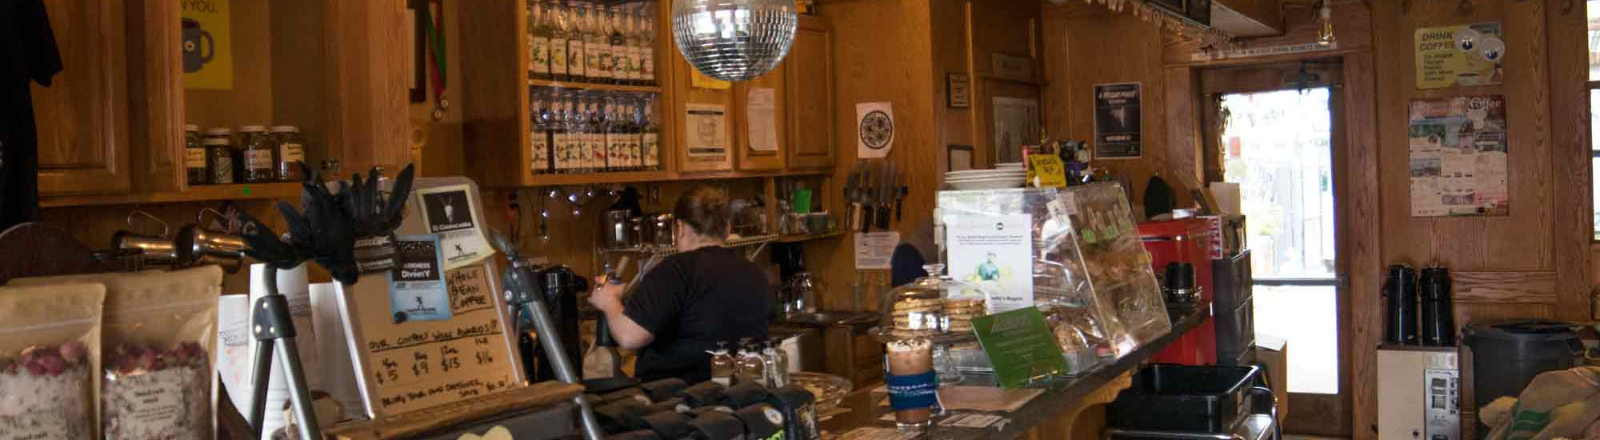 Interior counter with 1 lb. bags of coffee, flavored syrups and pastries with barista making a drink at Gladstone's Happyrock Coffee